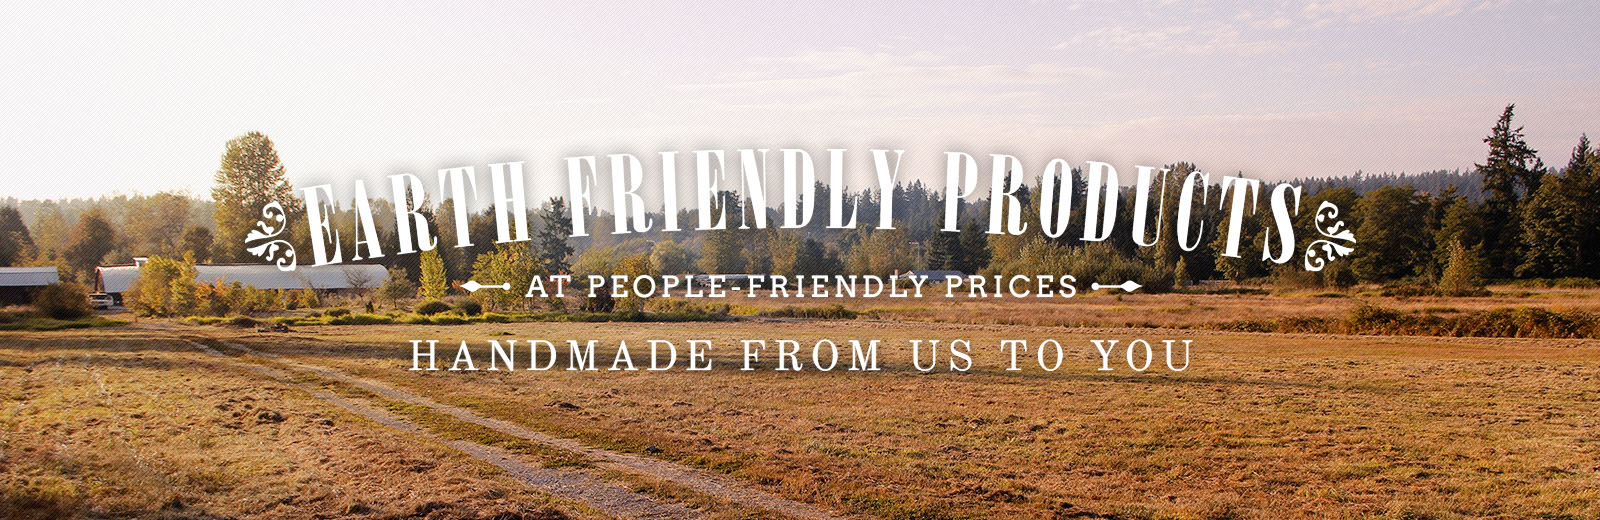 Earth Friendly Products at People Friendly Prices